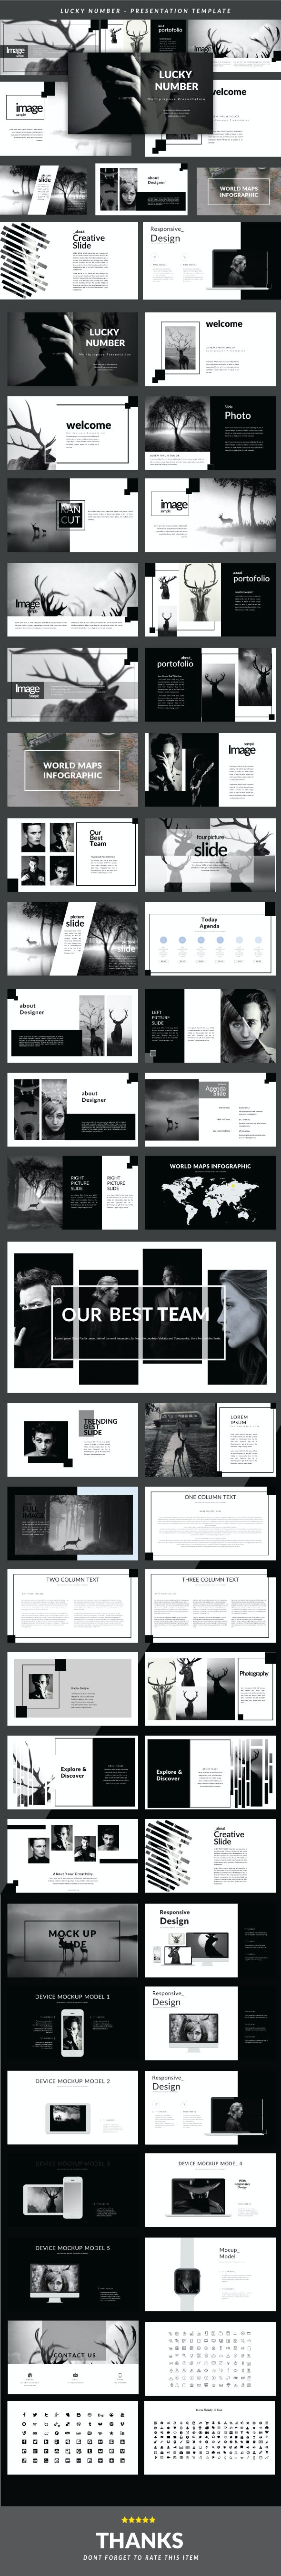 Lucky Number Keynote Templates - PowerPoint Templates Presentation Templates